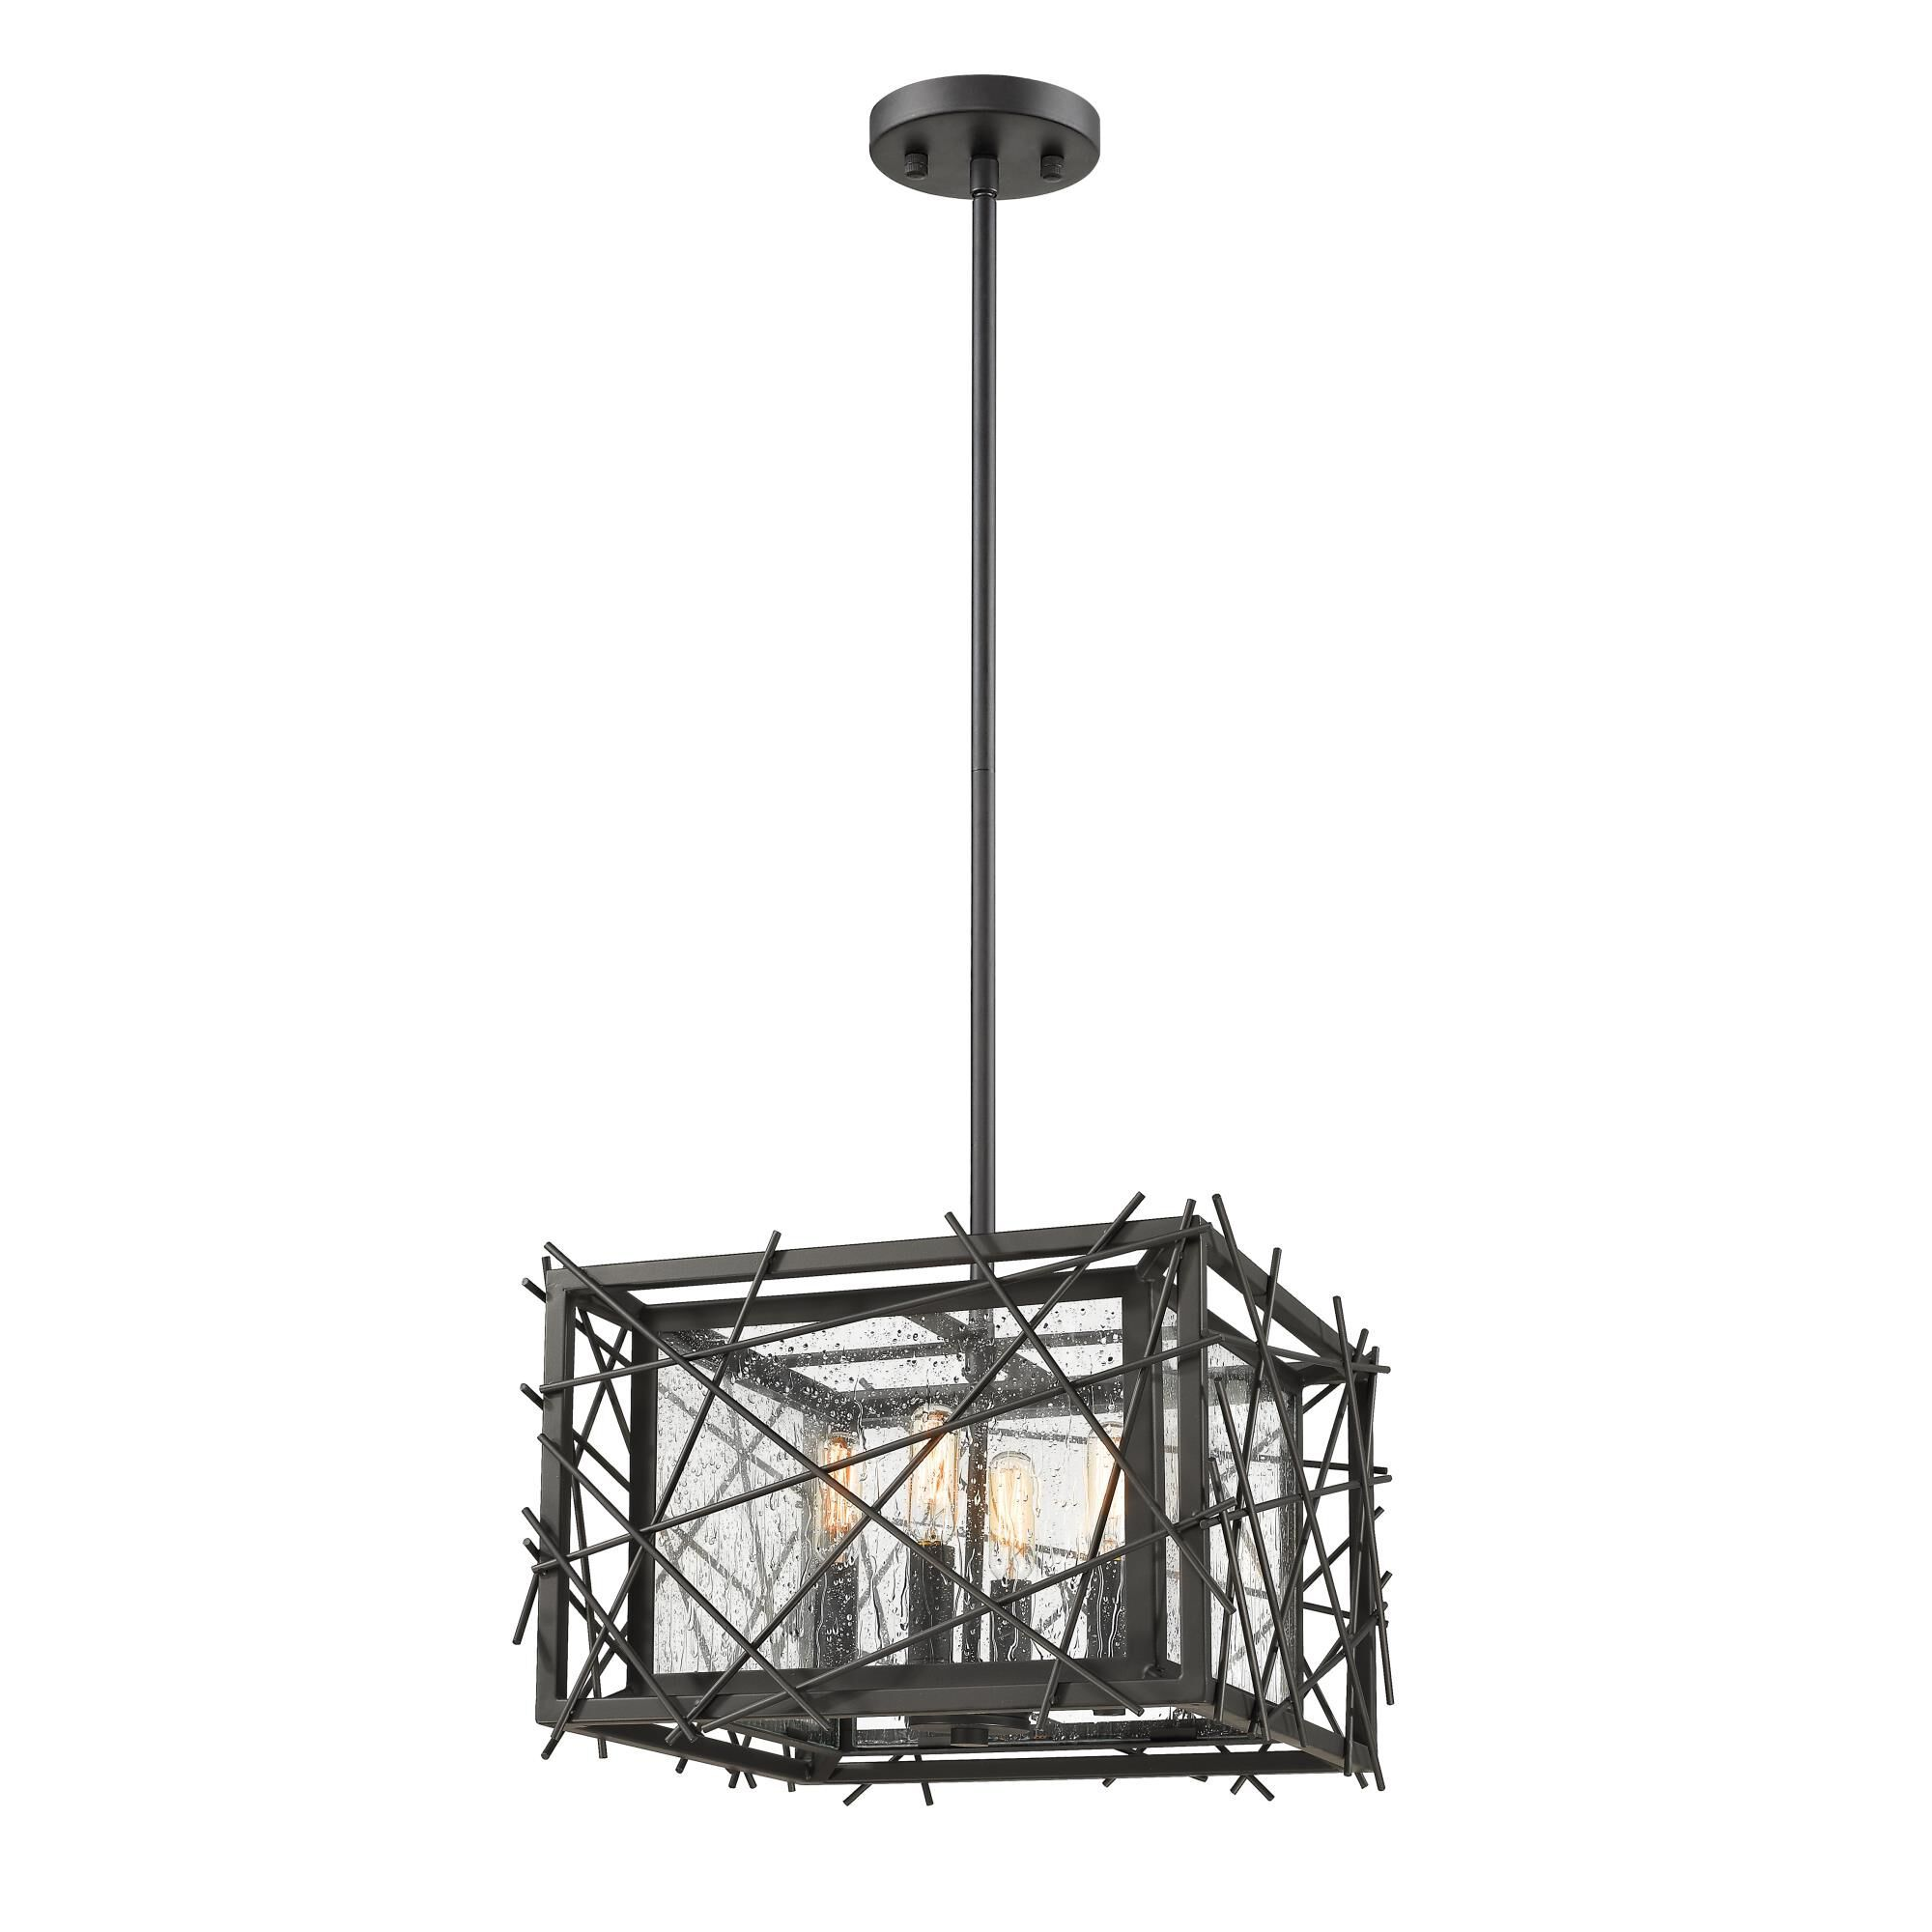 Stanwood 14 Inch Large Pendant Capitol Lighting In 2021 Bronze Pendant Light Seeded Glass Pendant Modern Pendant Light